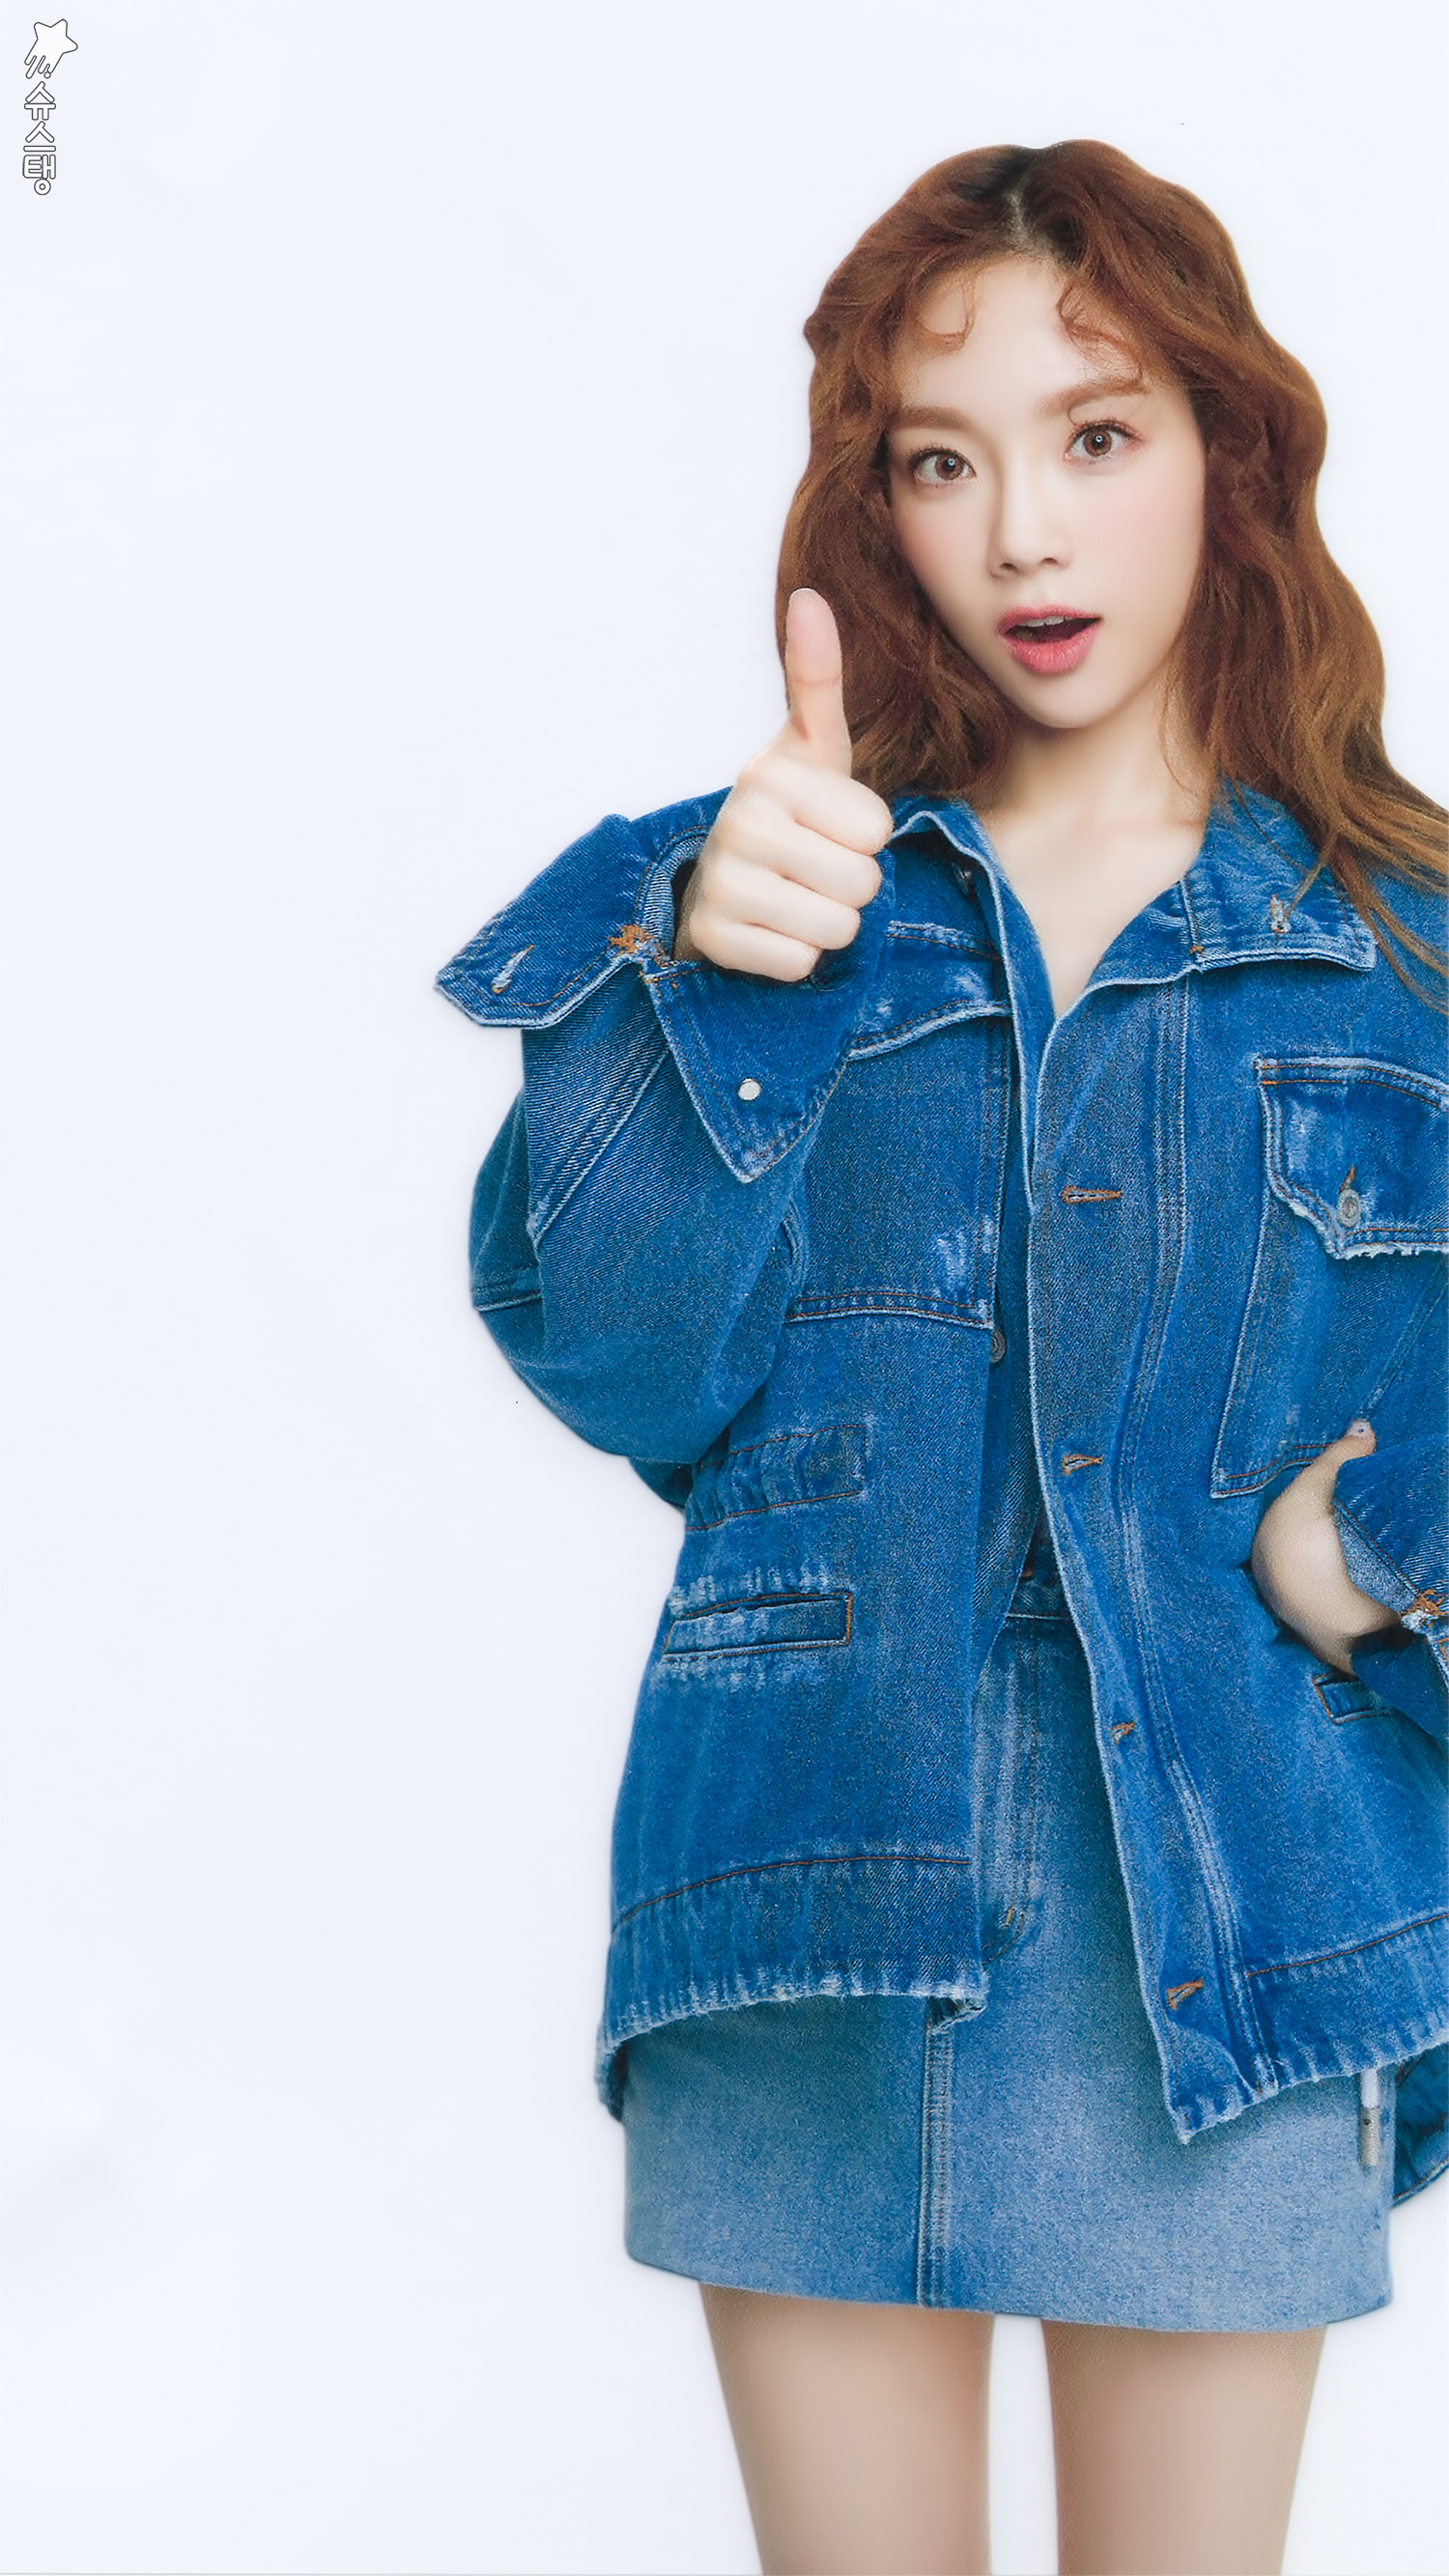 Taeyeon s… one Concert – Photocards